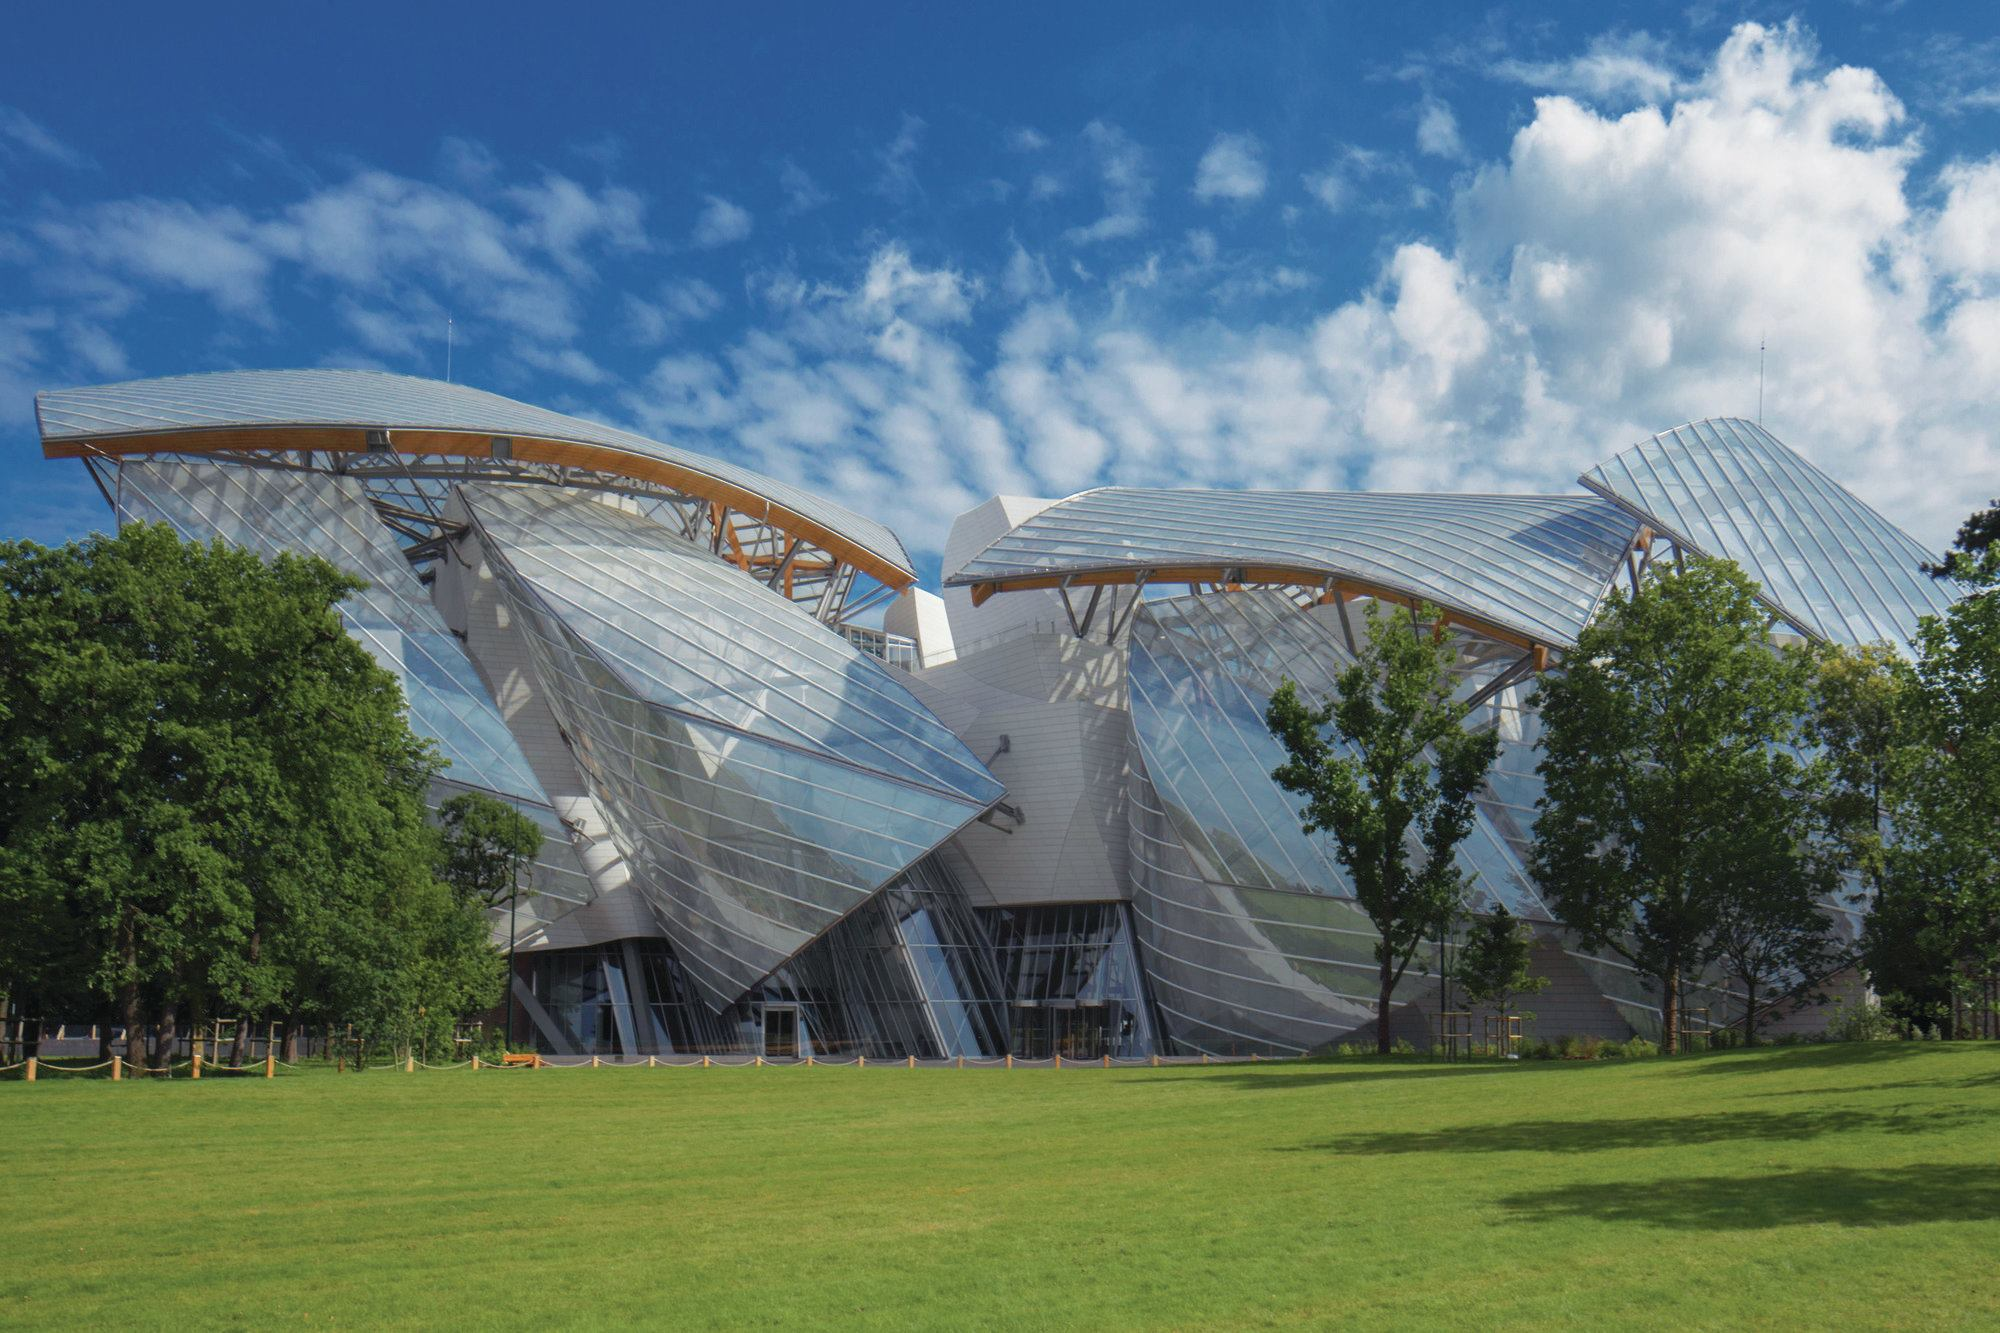 Fondation louis vuitton designed by gehry partners architect magazine cultural projects - Frank gehry louis vuitton ...